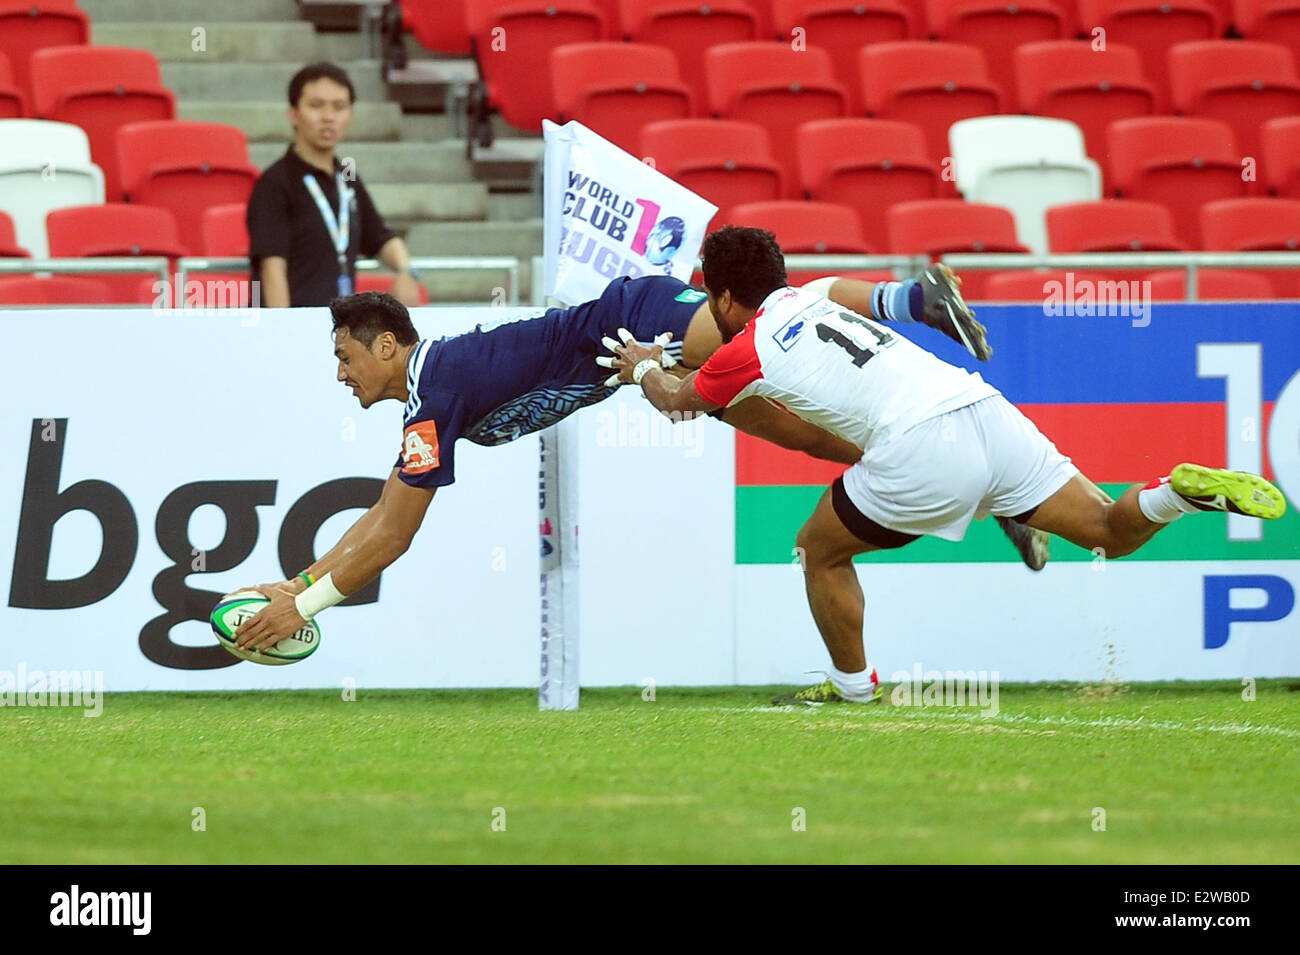 Singapore. 21st June, 2014. Players compete during a match at the Rugby World Cup 10s held in Singapore's National - Stock Image